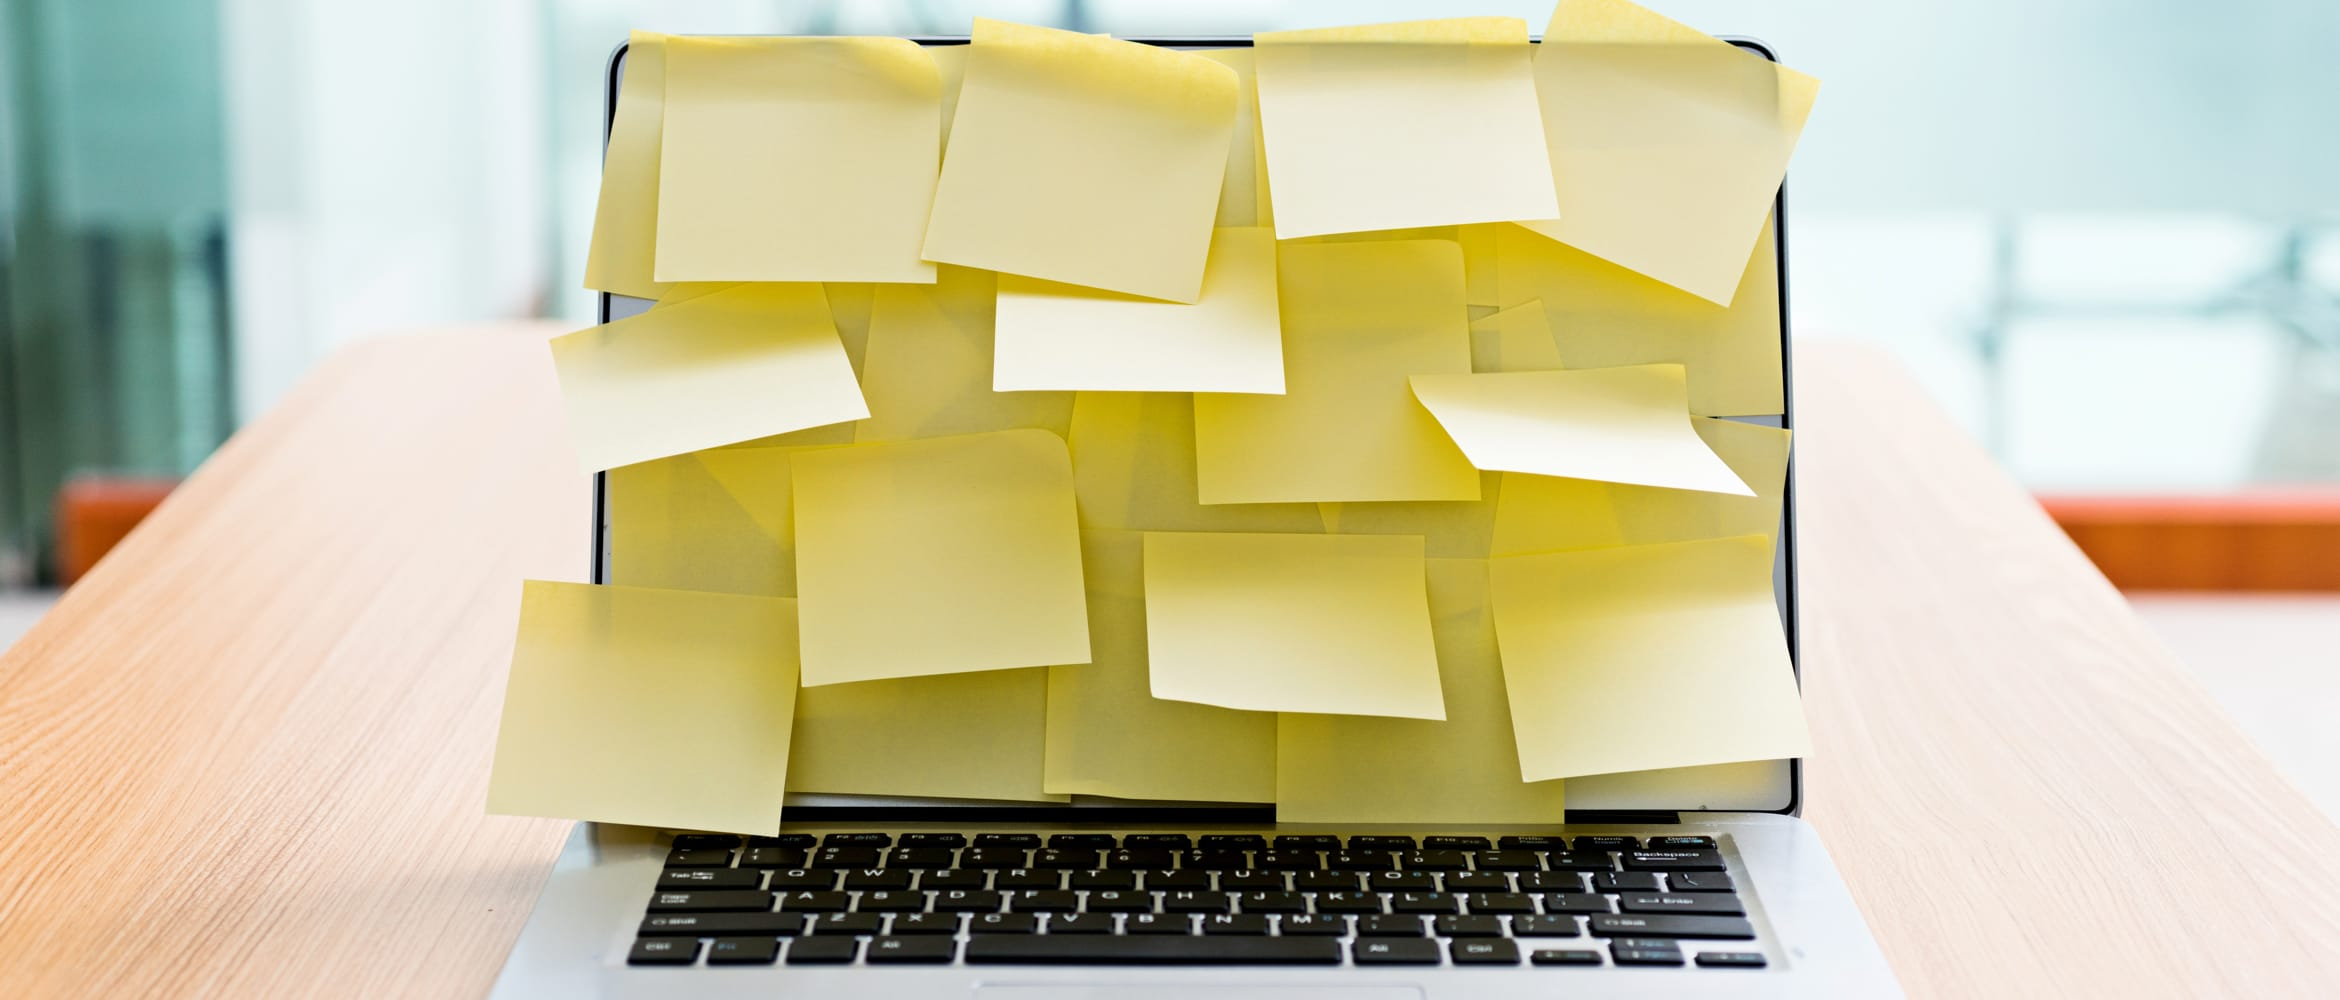 A laptop screen covered in yellow post-it notes